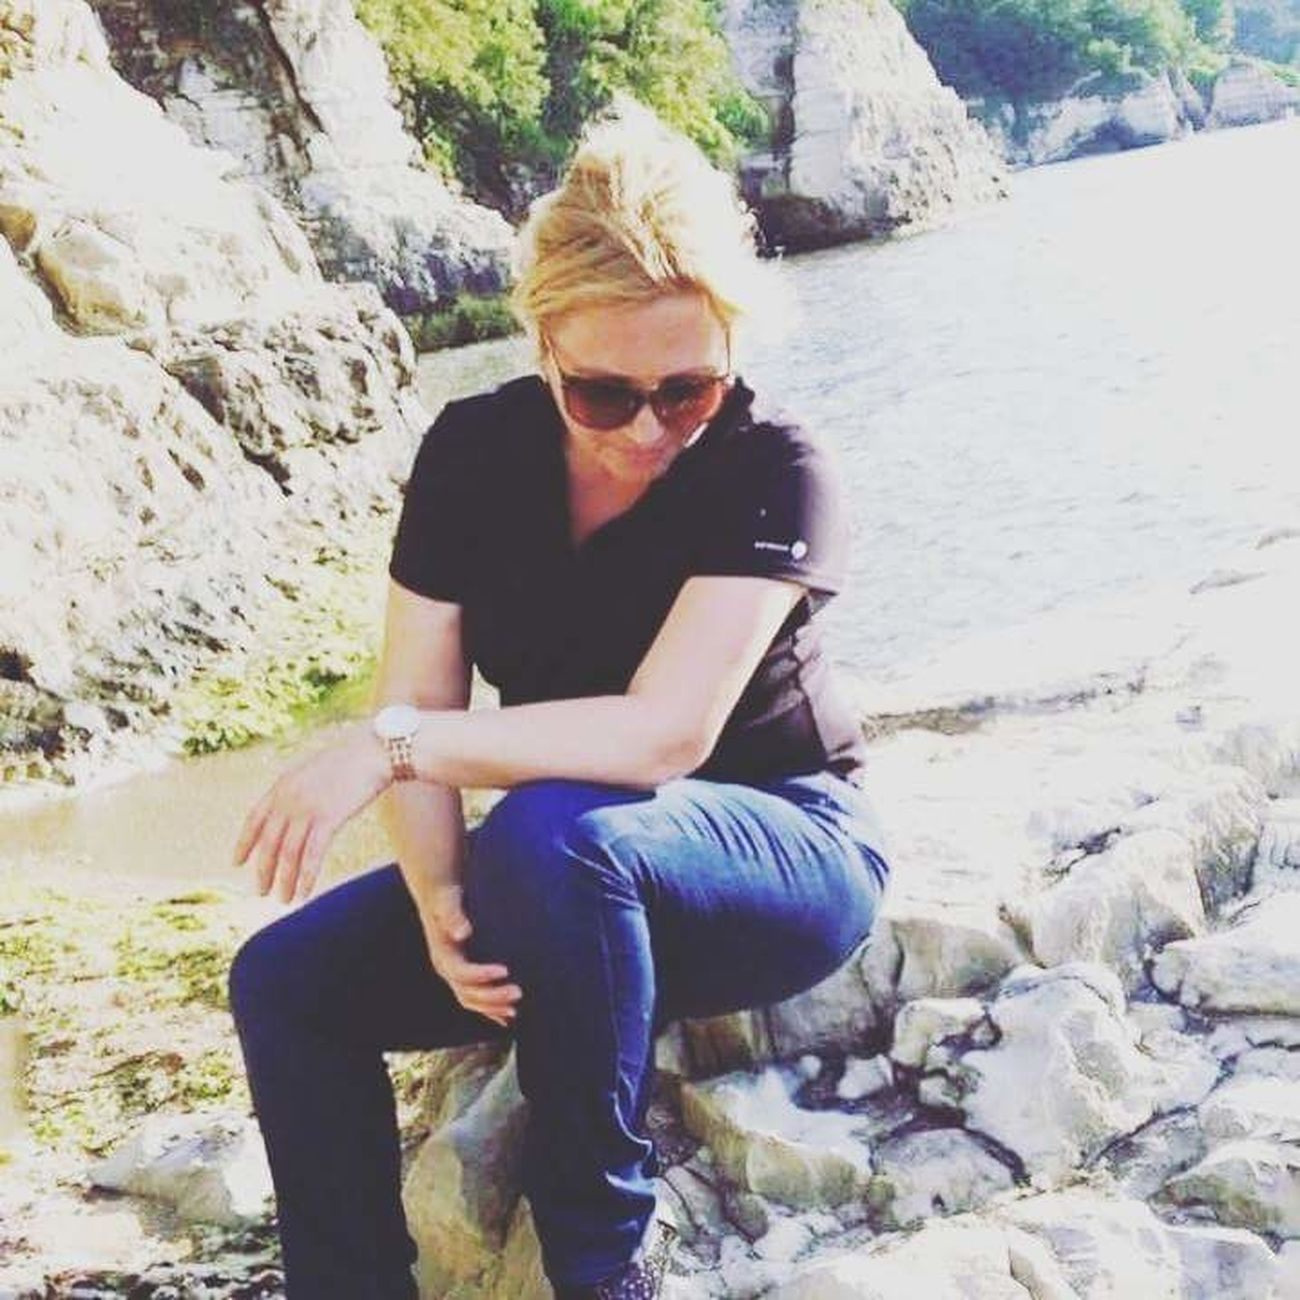 Sitting Rock - Object Adults Only Adult Sunglasses One Person Only Women PeopleTürkiye Mid Adult Full Length Day Casual ClothingBeatuiful One Woman Only Front View Outdoors Nature Relaxation Young Adult Women Water sea turkey kerpe Old Man First Eyeem Photo Exlove